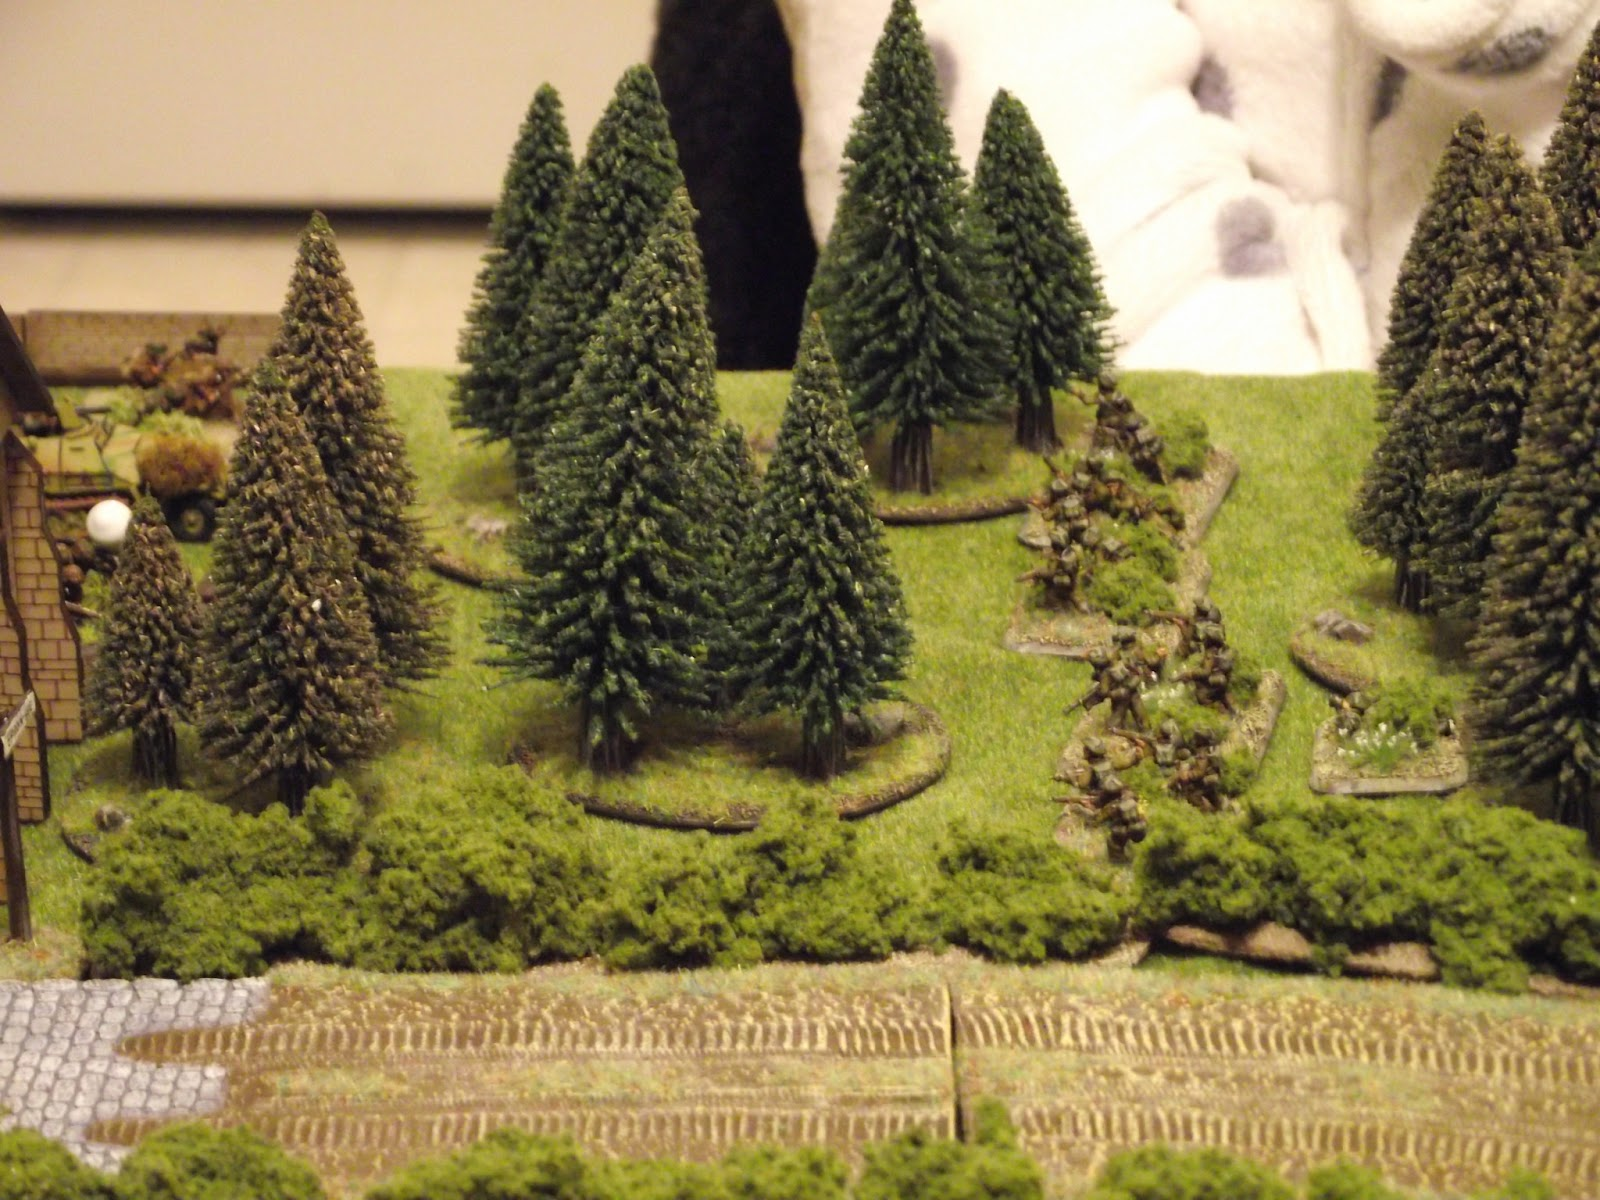 With the success of the last few turns, the British 2nd platoon starts to rush towards the church in the hopes of taking out the tank hunters in side.